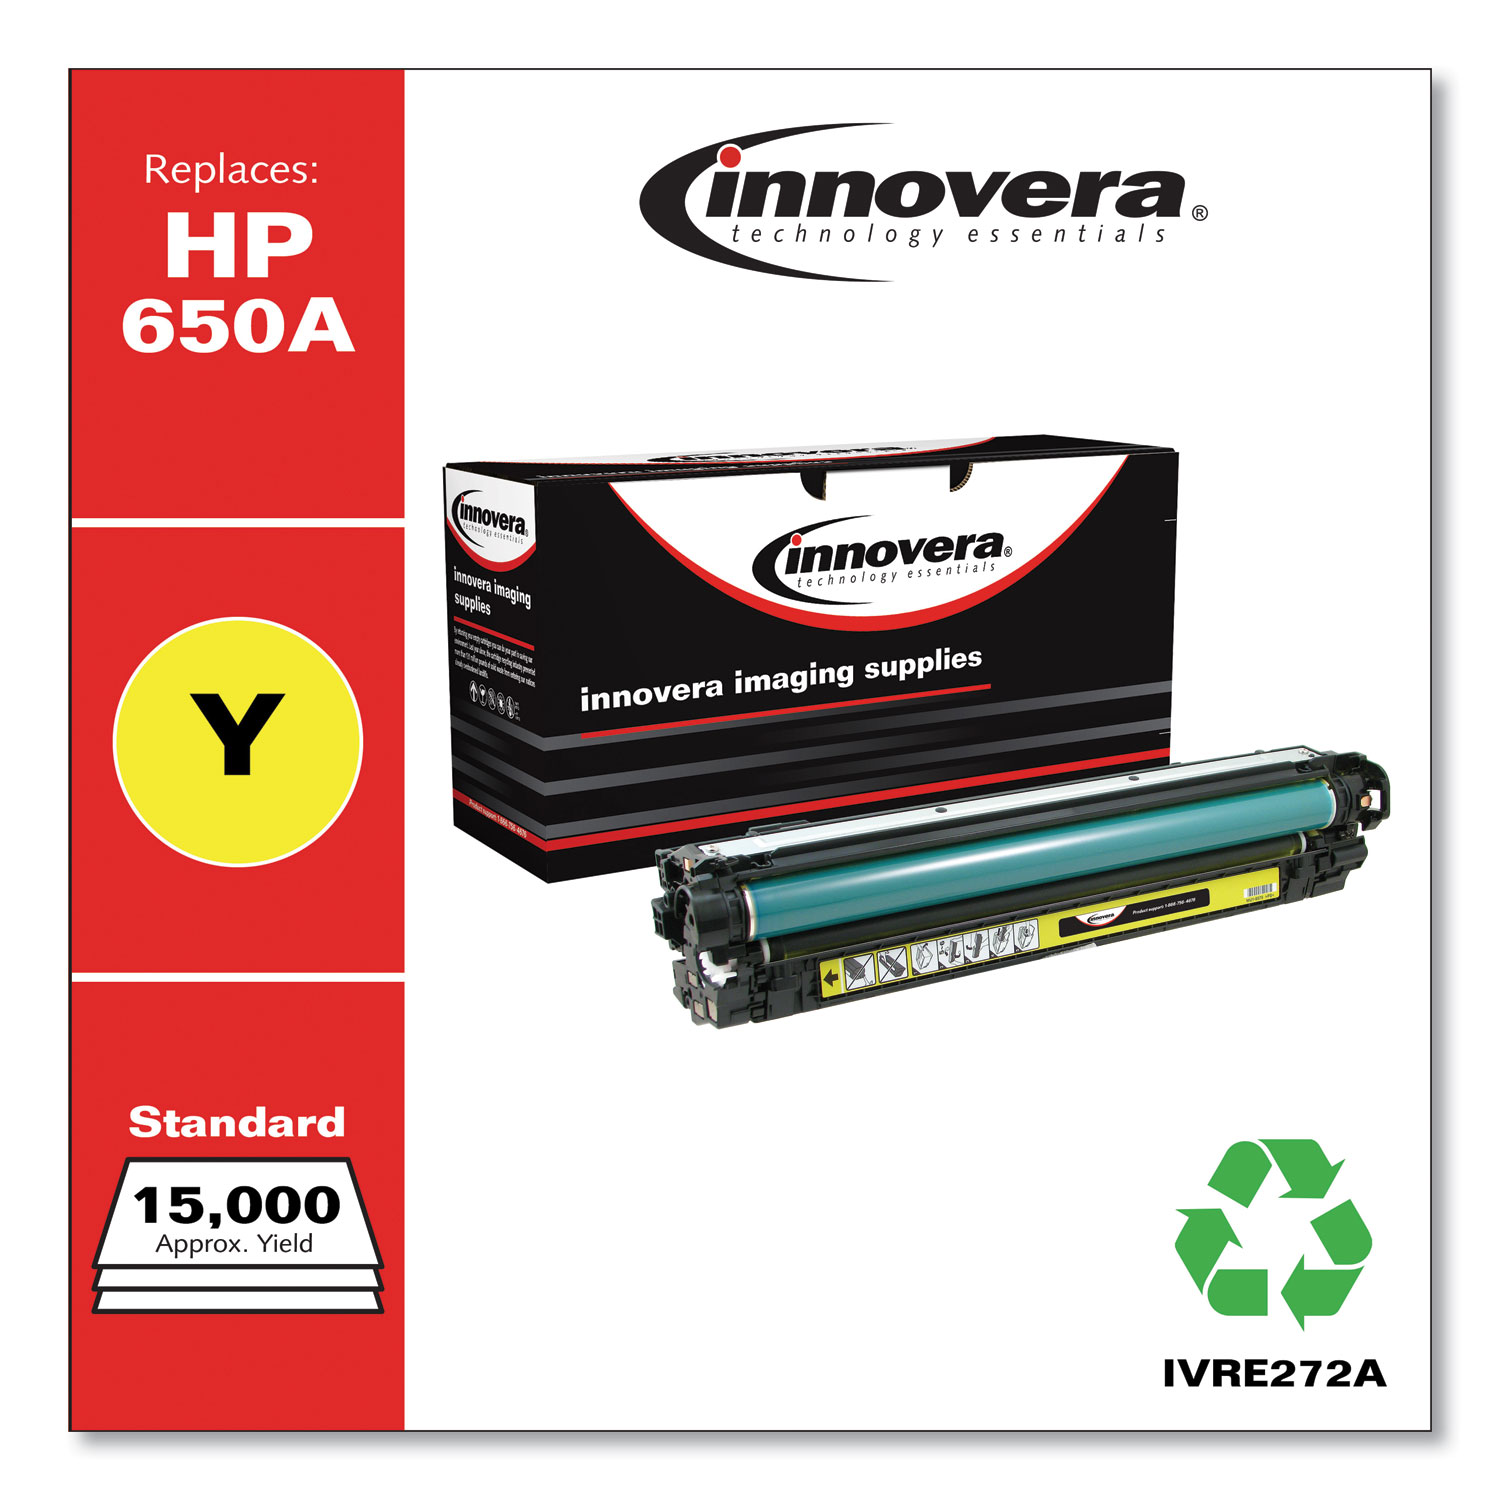 Remanufactured Yellow Toner, Replacement for HP 650A (CE272A), 15,000 Page-Yield IVRE272A